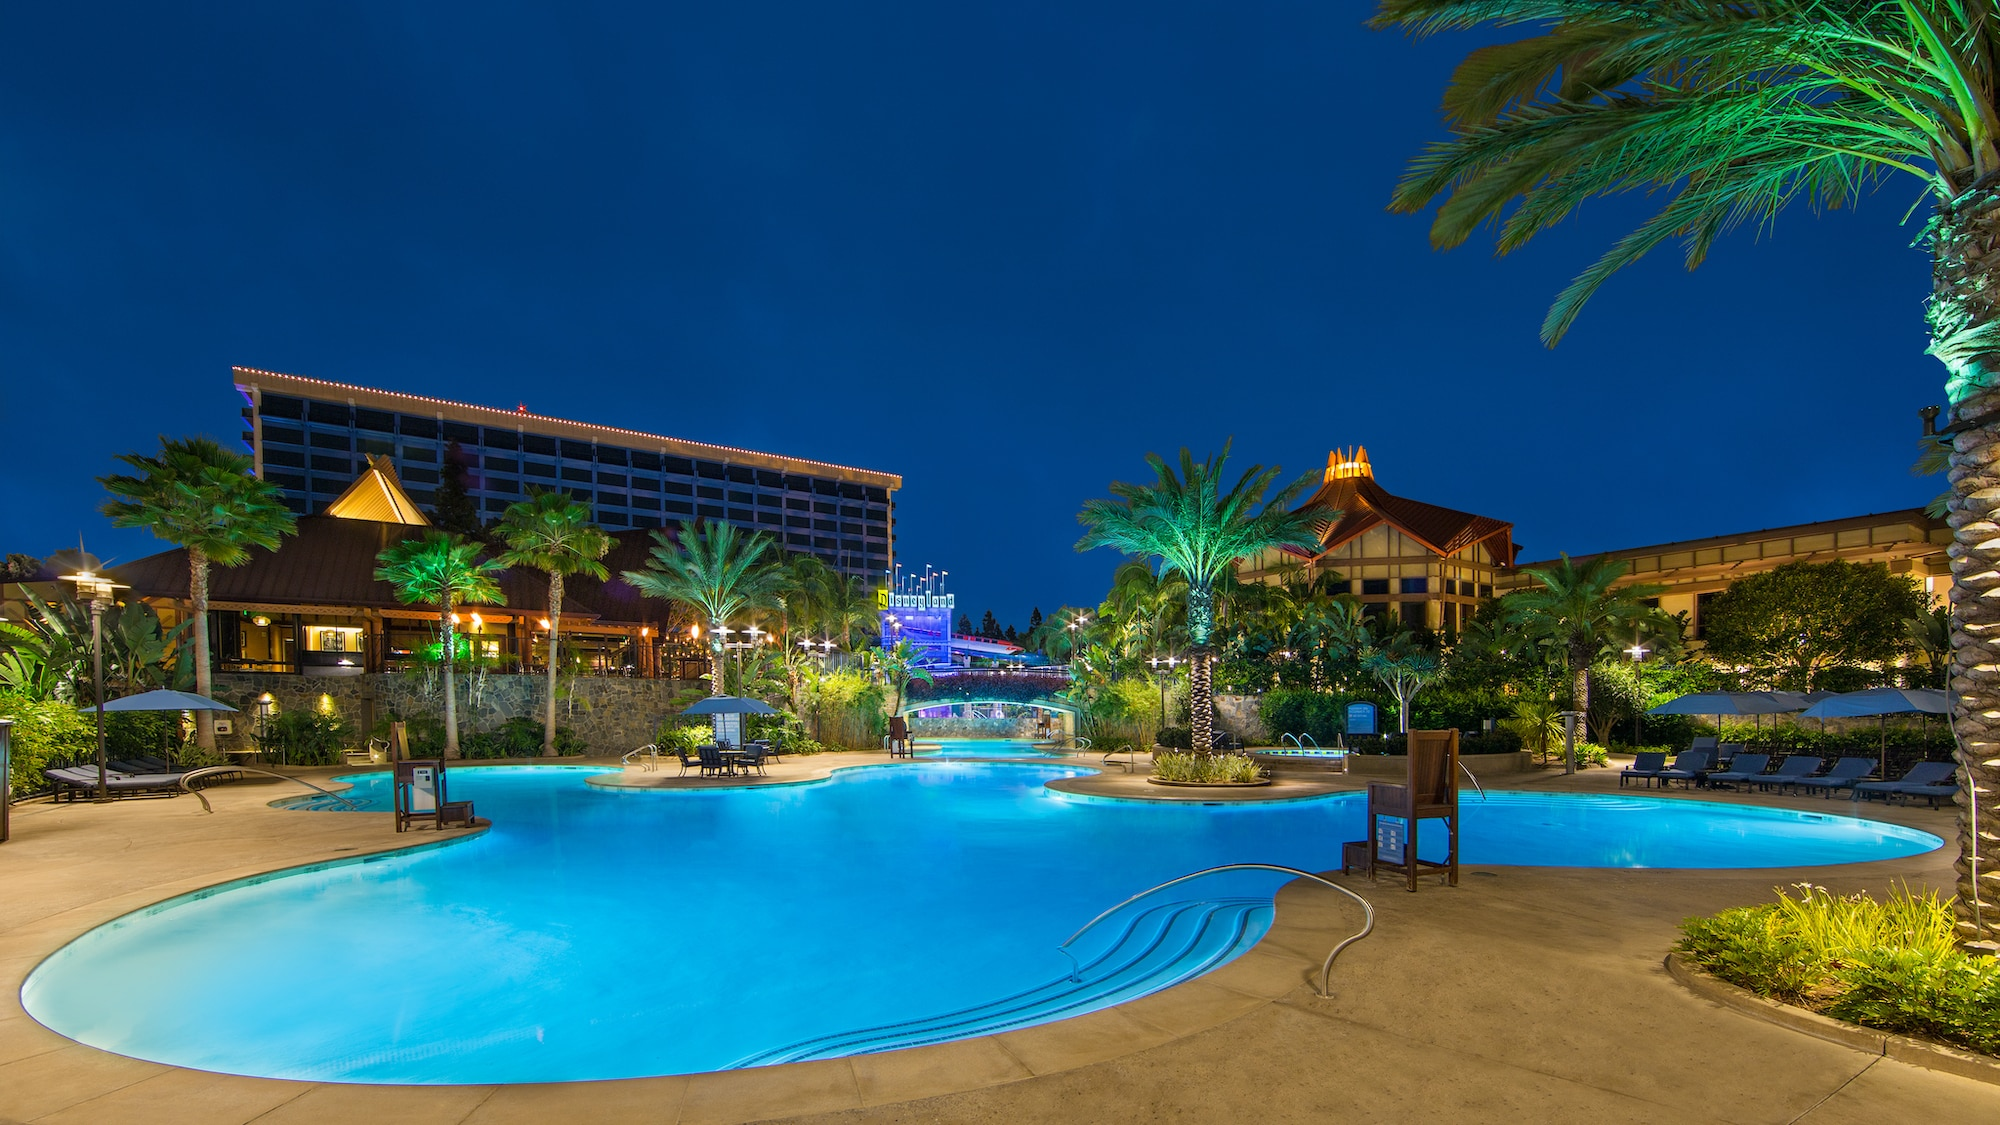 Image of the pool lit at night at the Disneyland Hotel.